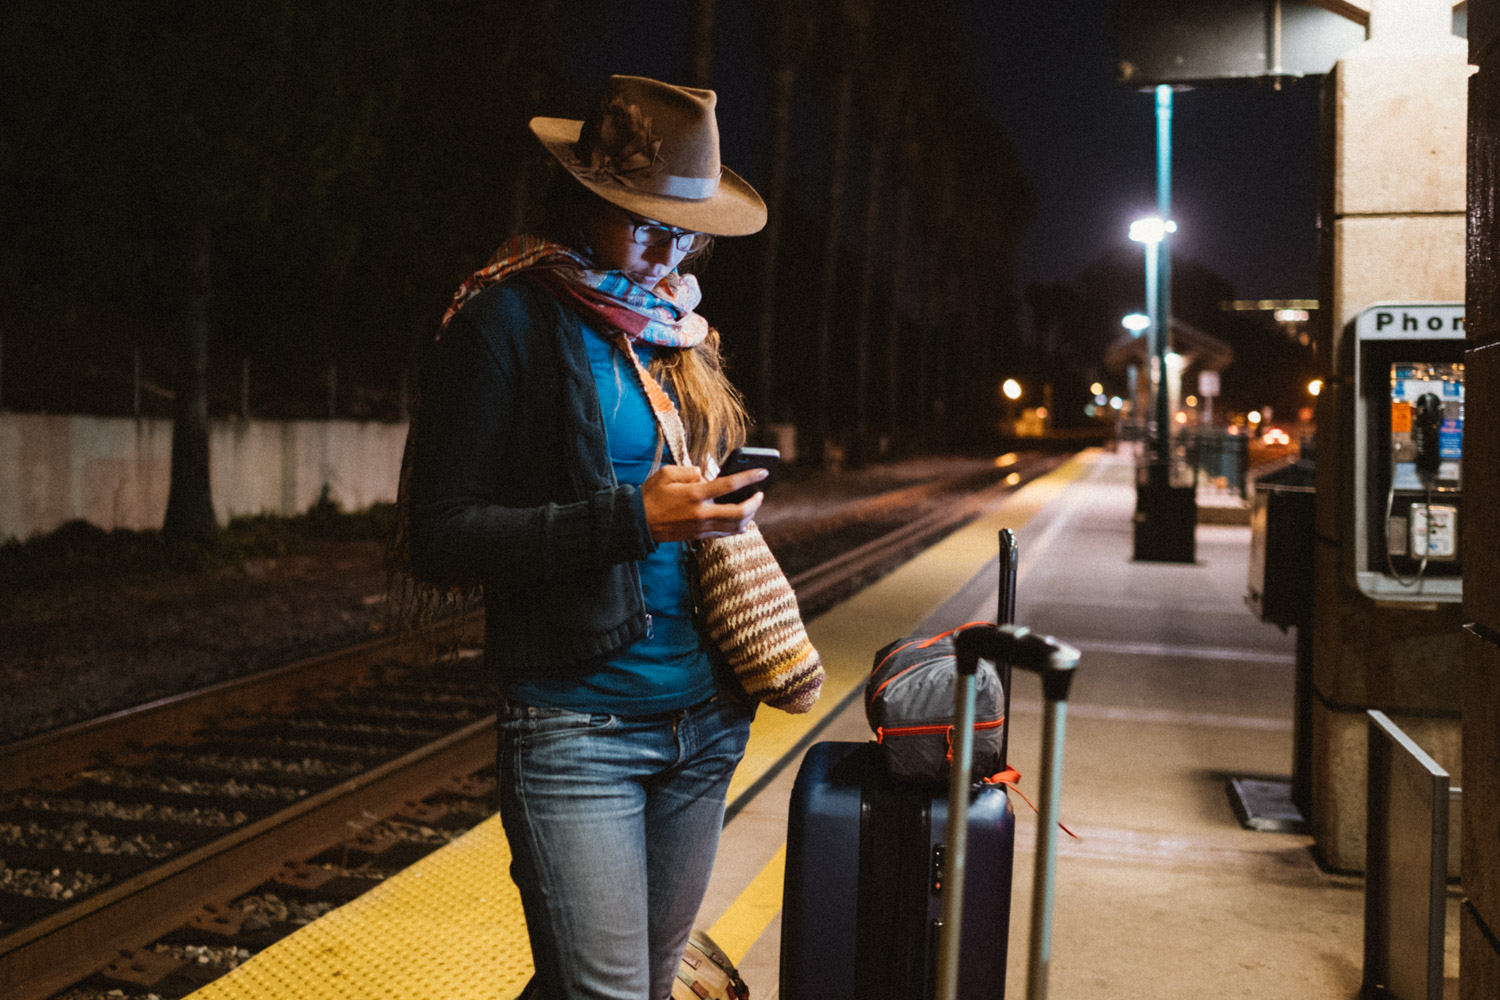 Waiting for the train in Ventura